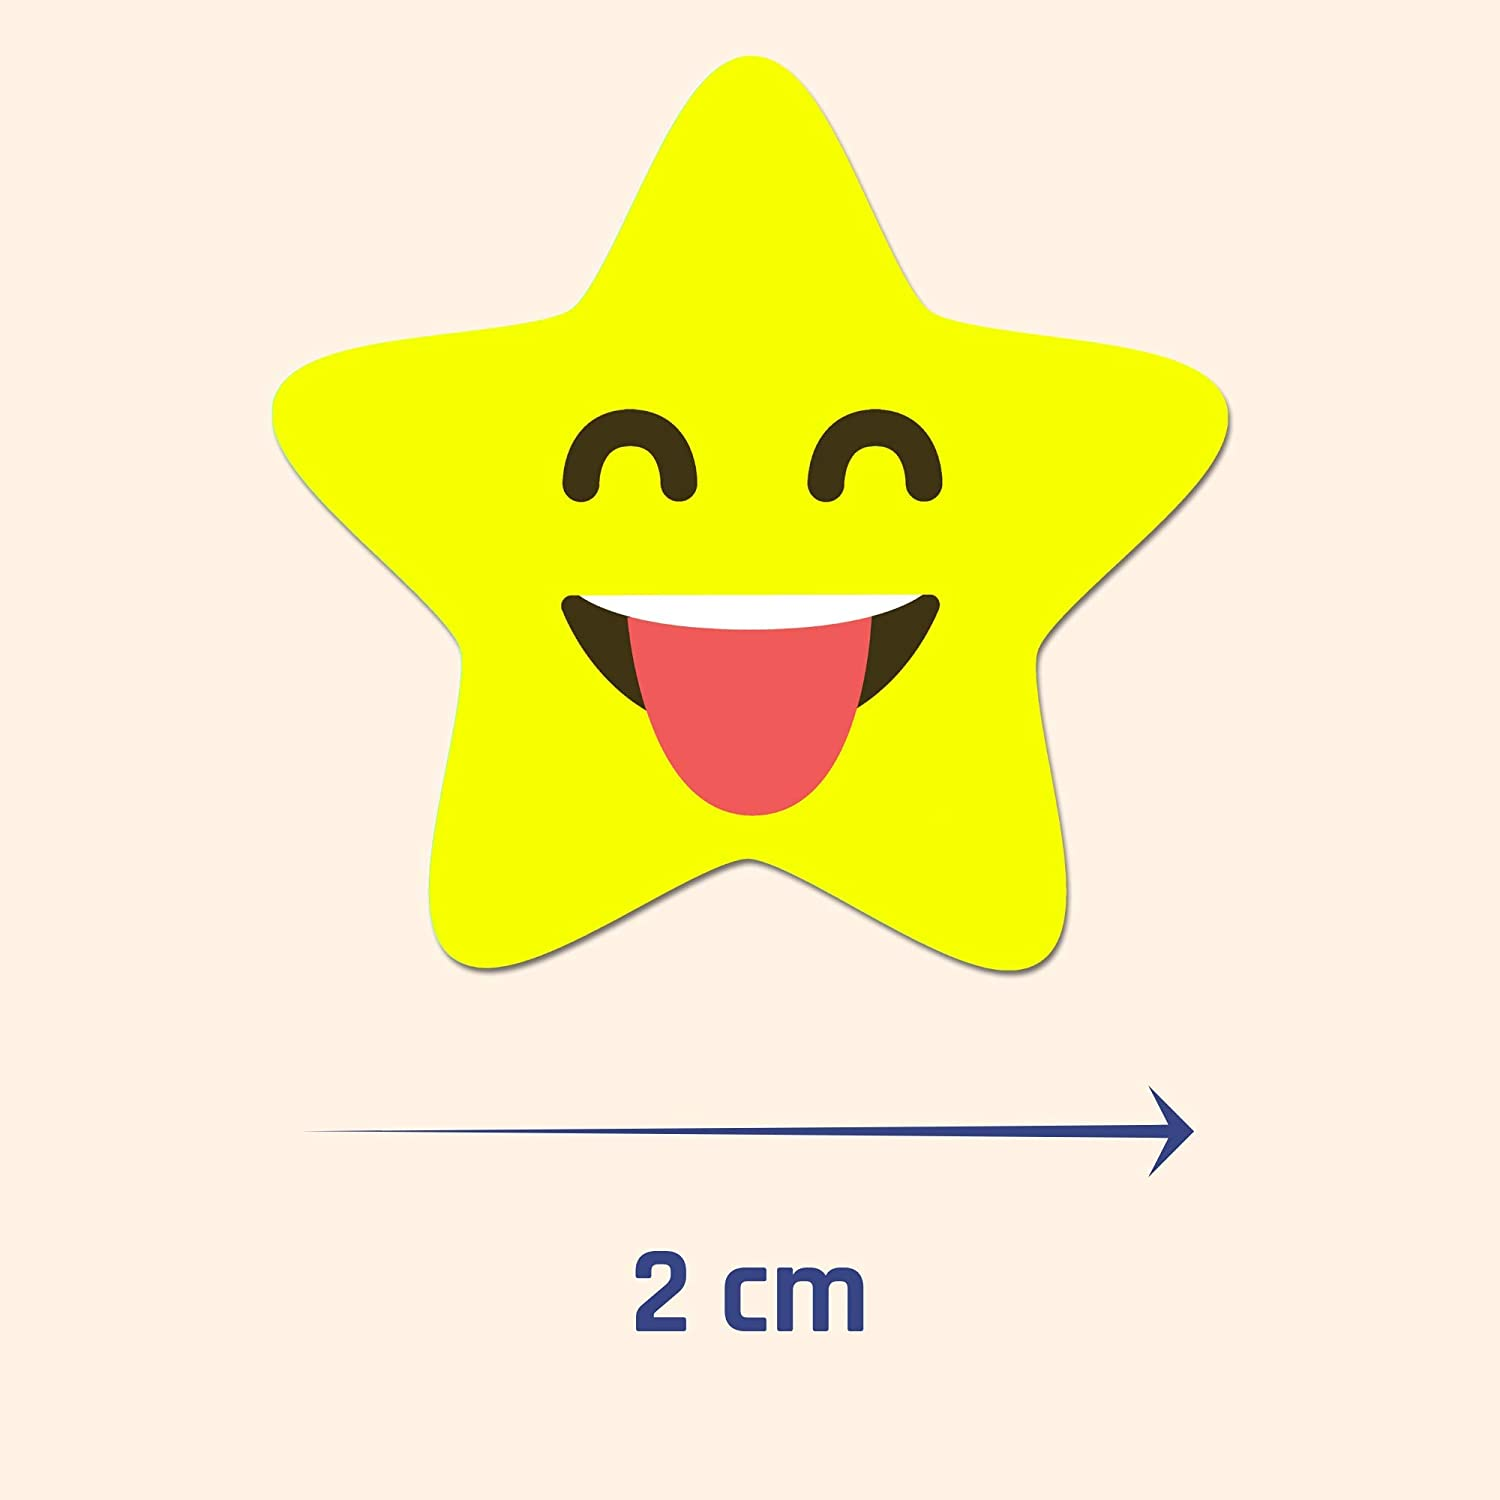 10 Designs Smiley Star Reward Stickers 2cm 1000 Pack